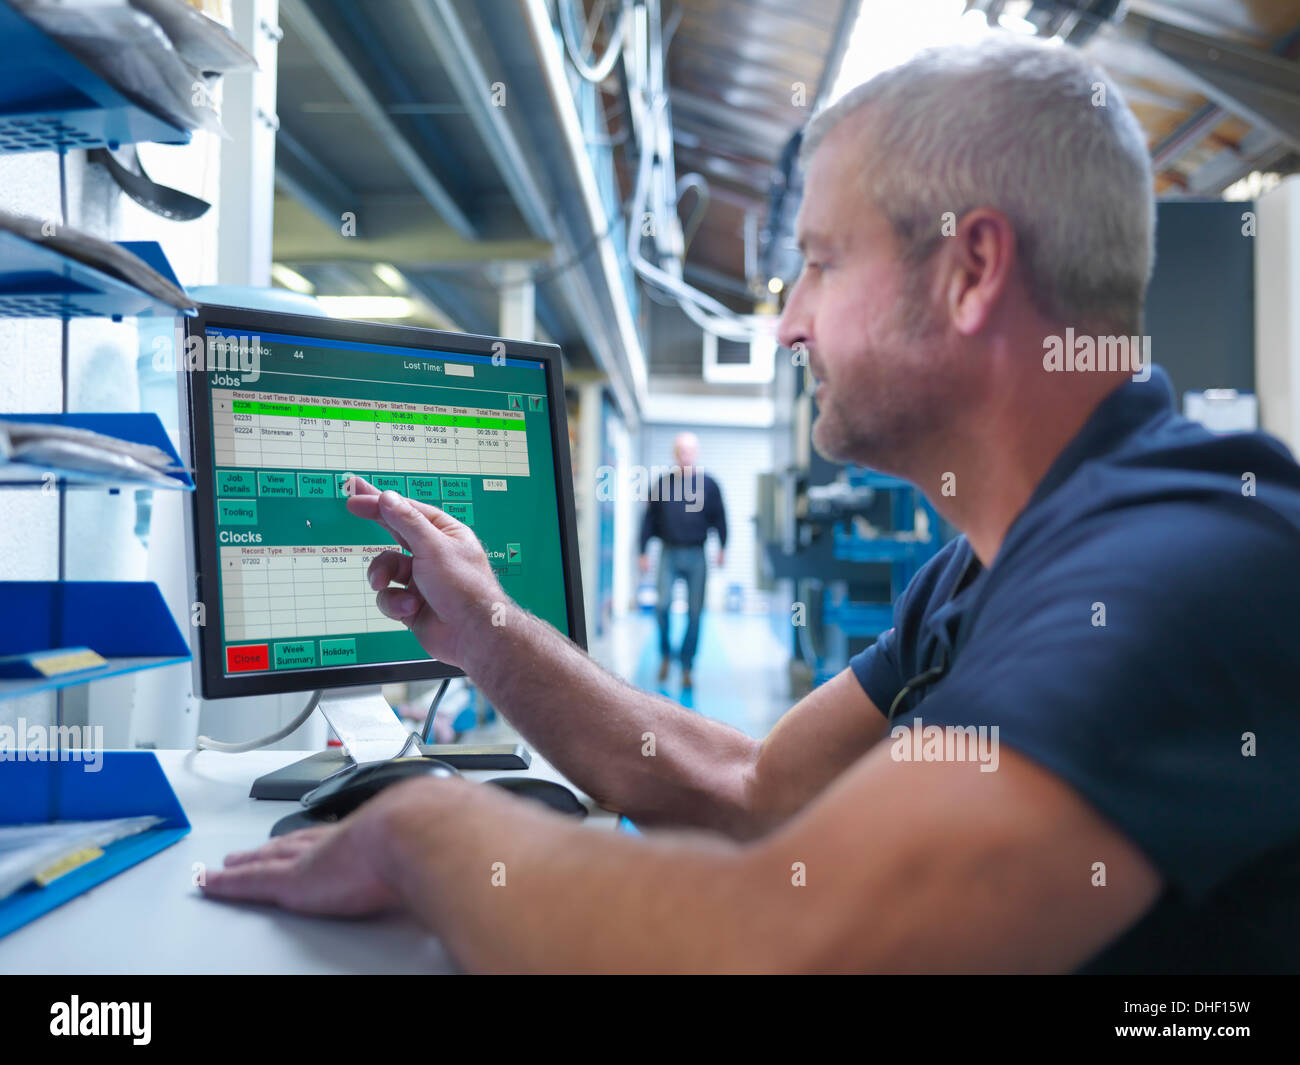 Engineer using touchscreen at computer workstation in factory - Stock Image